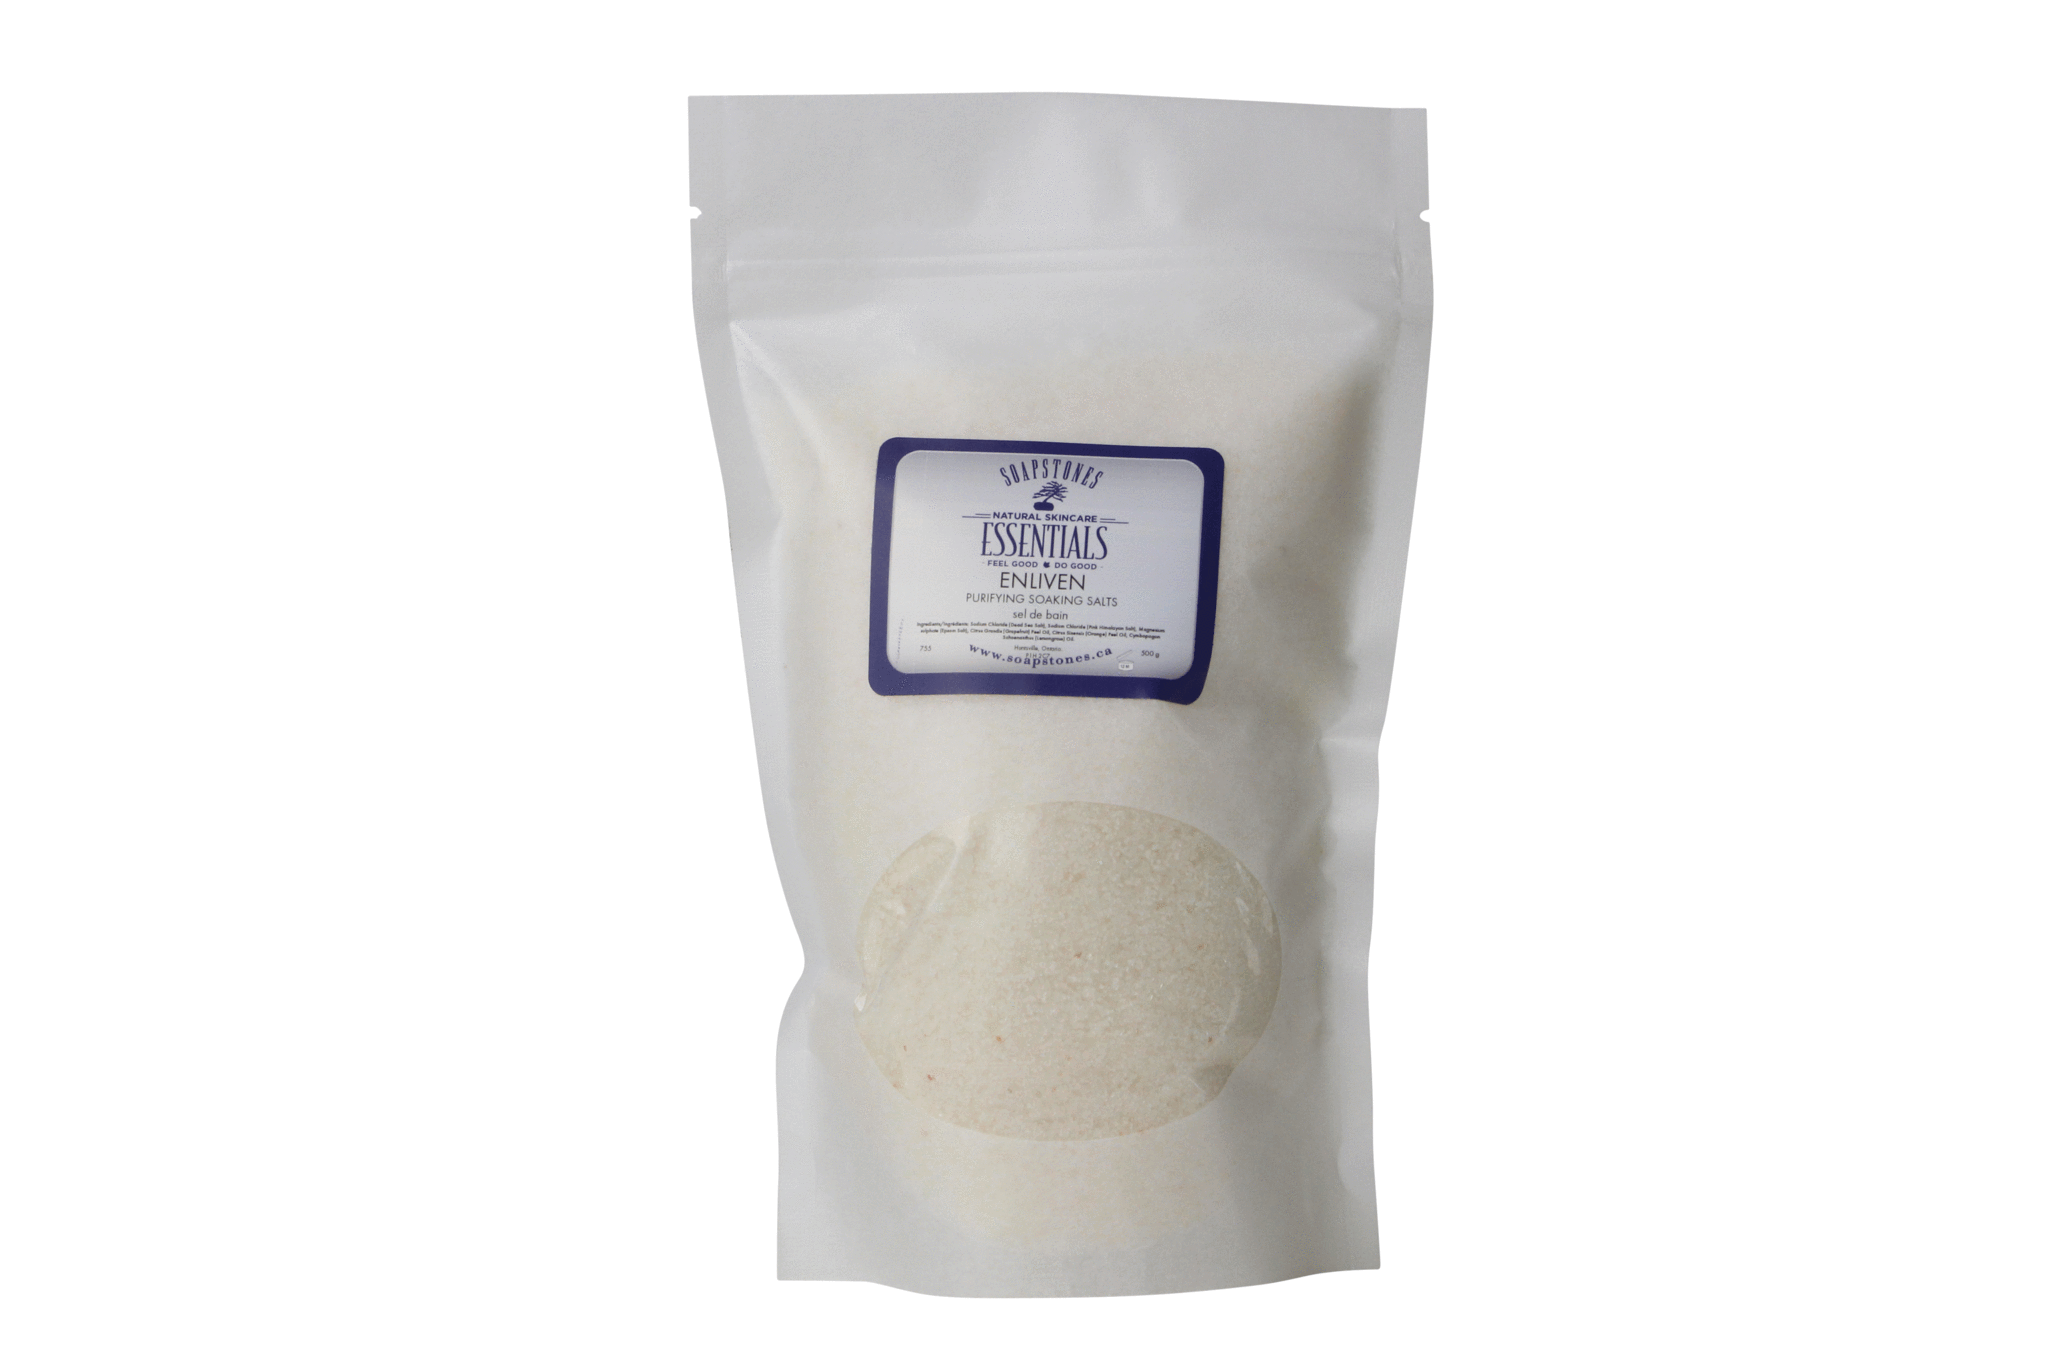 Enliven Purifying Soaking Salts